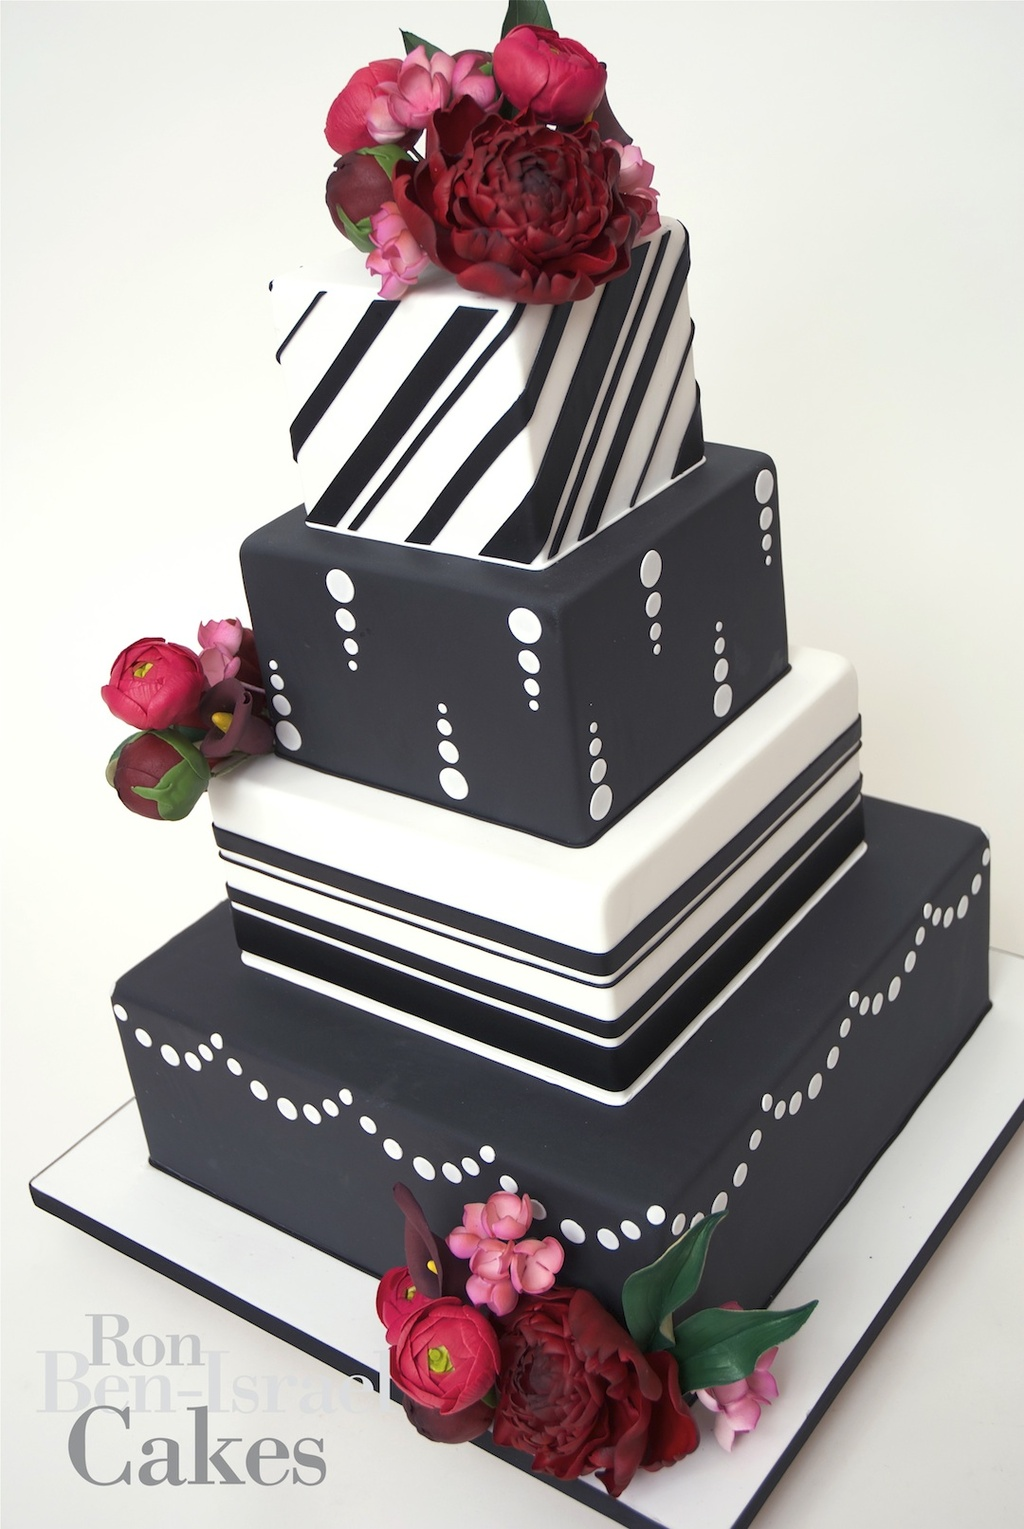 Wedding-cake-inspiration-ron-ben-isreal-wedding-cakes-black-white-red.full